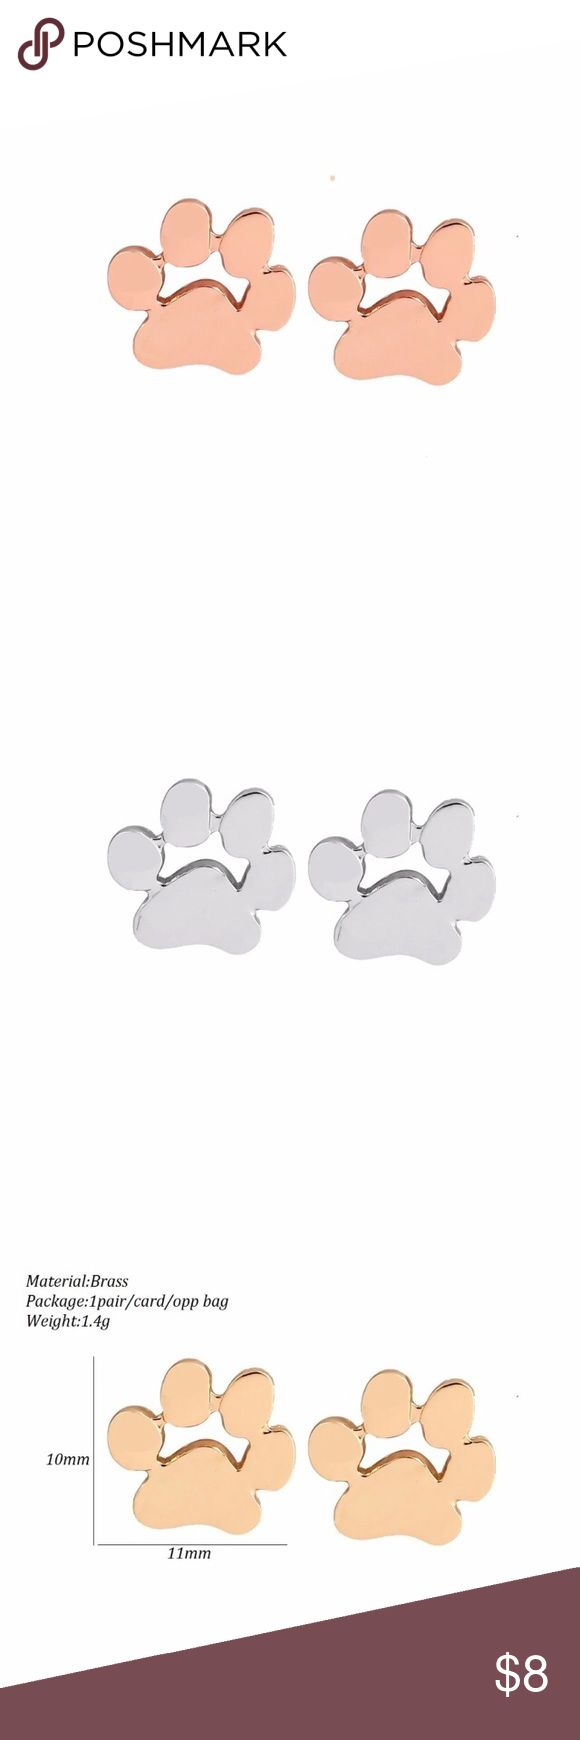 🎁 Paw Print Earrings available in 3 colors Perfectly adorable stud earrings.  Available in gold, silver and rose gold.  Gift box is included. Jewelry Earrings